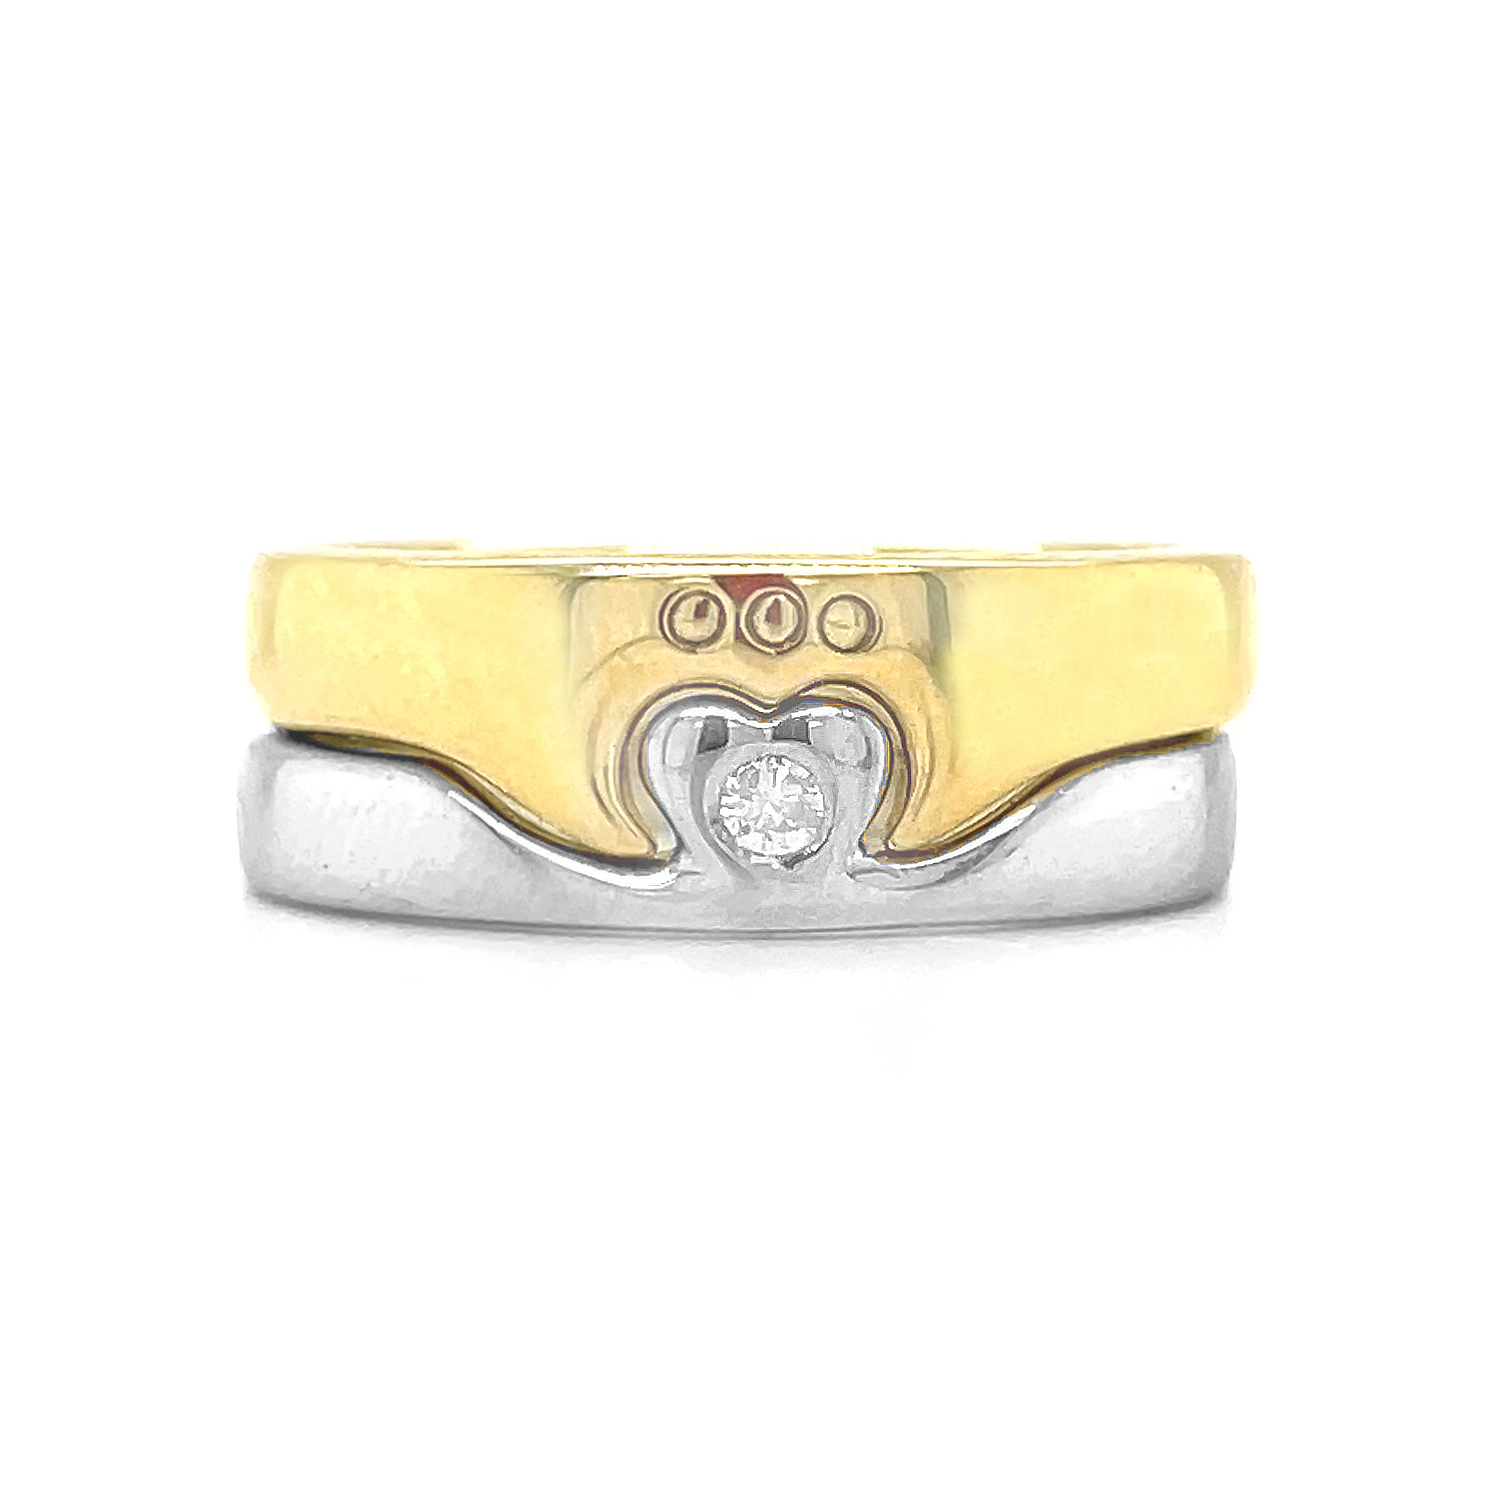 10k Yellow & White Gold 2 Part Claddagh Ring